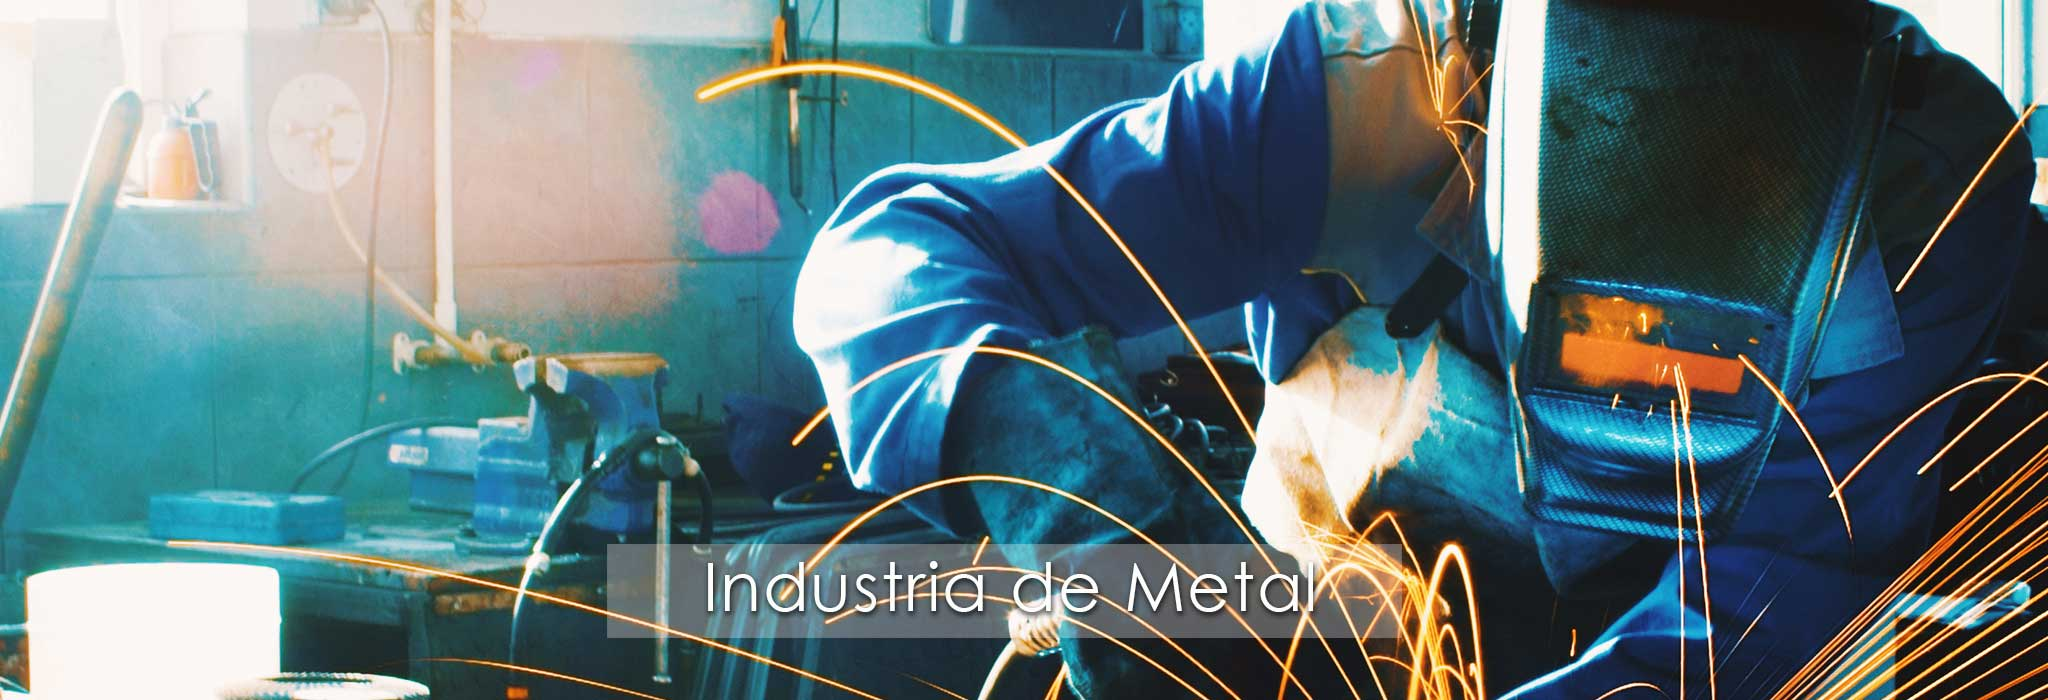 ERP Industria de Metal